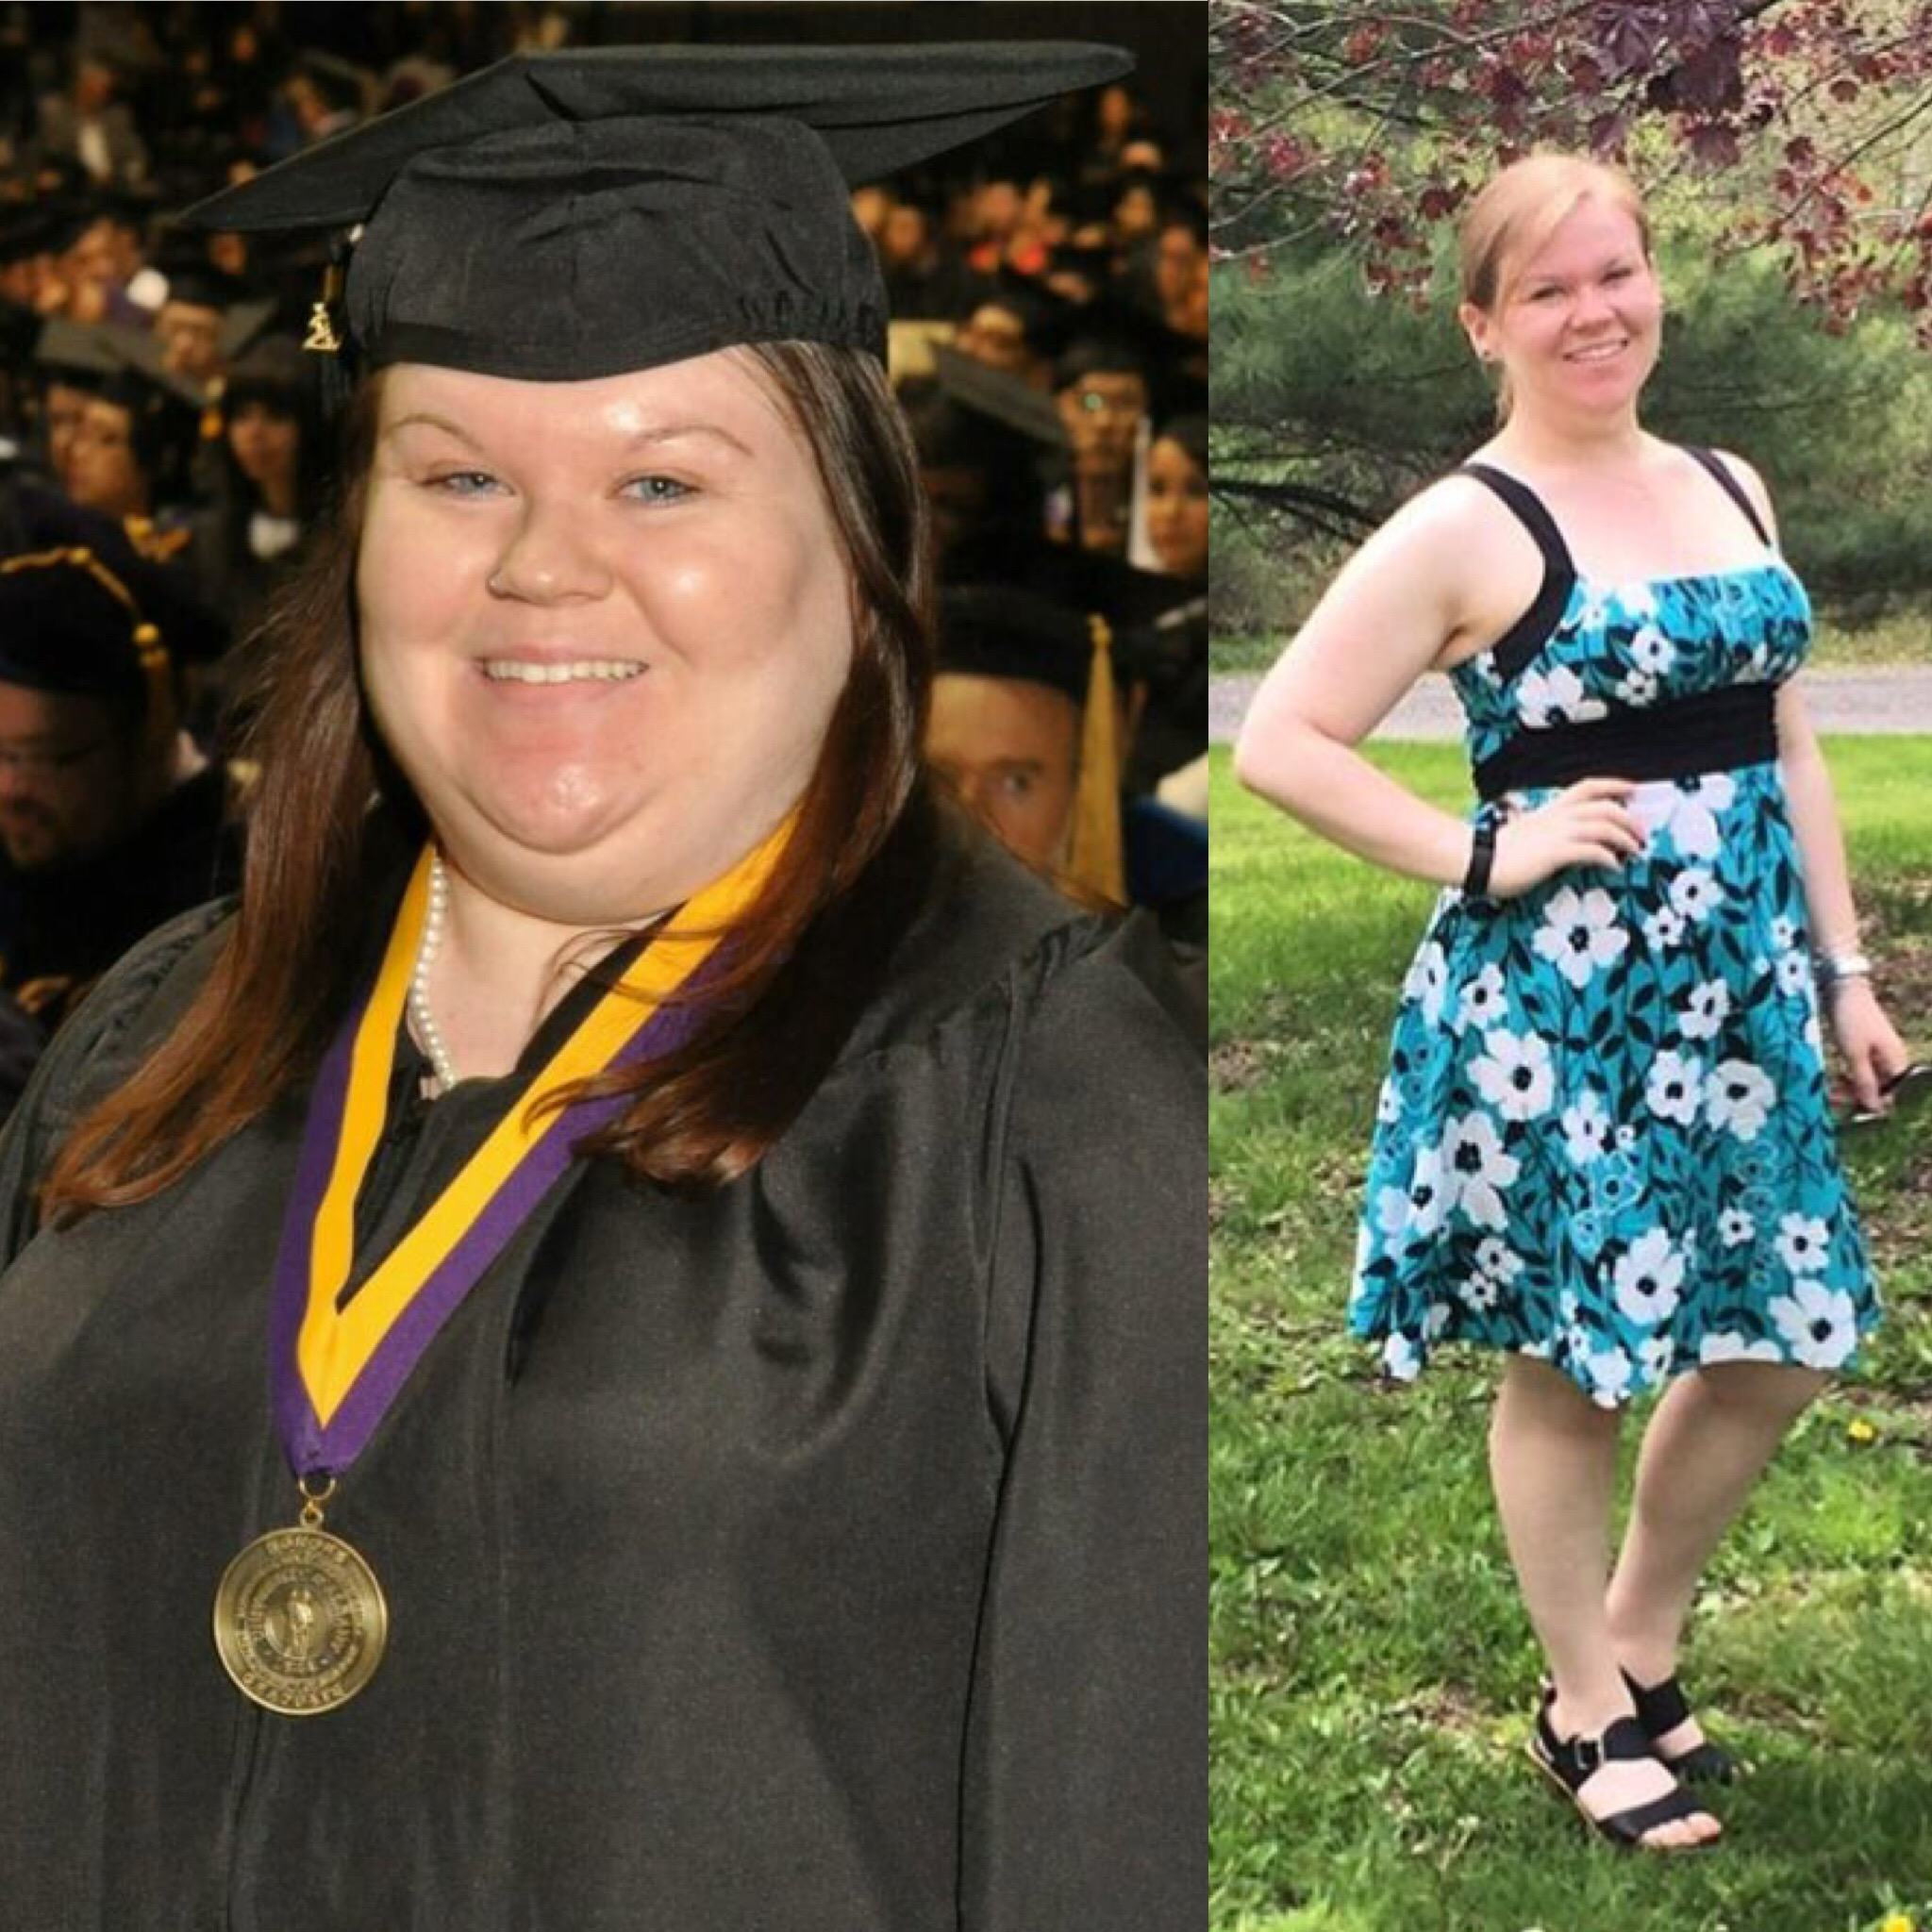 Heather lost 107 pounds! See my before and after weight loss pictures, and read amazing weight loss success stories from real women and their best weight loss diet plans and programs. Motivation to lose weight with walking and inspiration from before and after weightloss pics and photos.